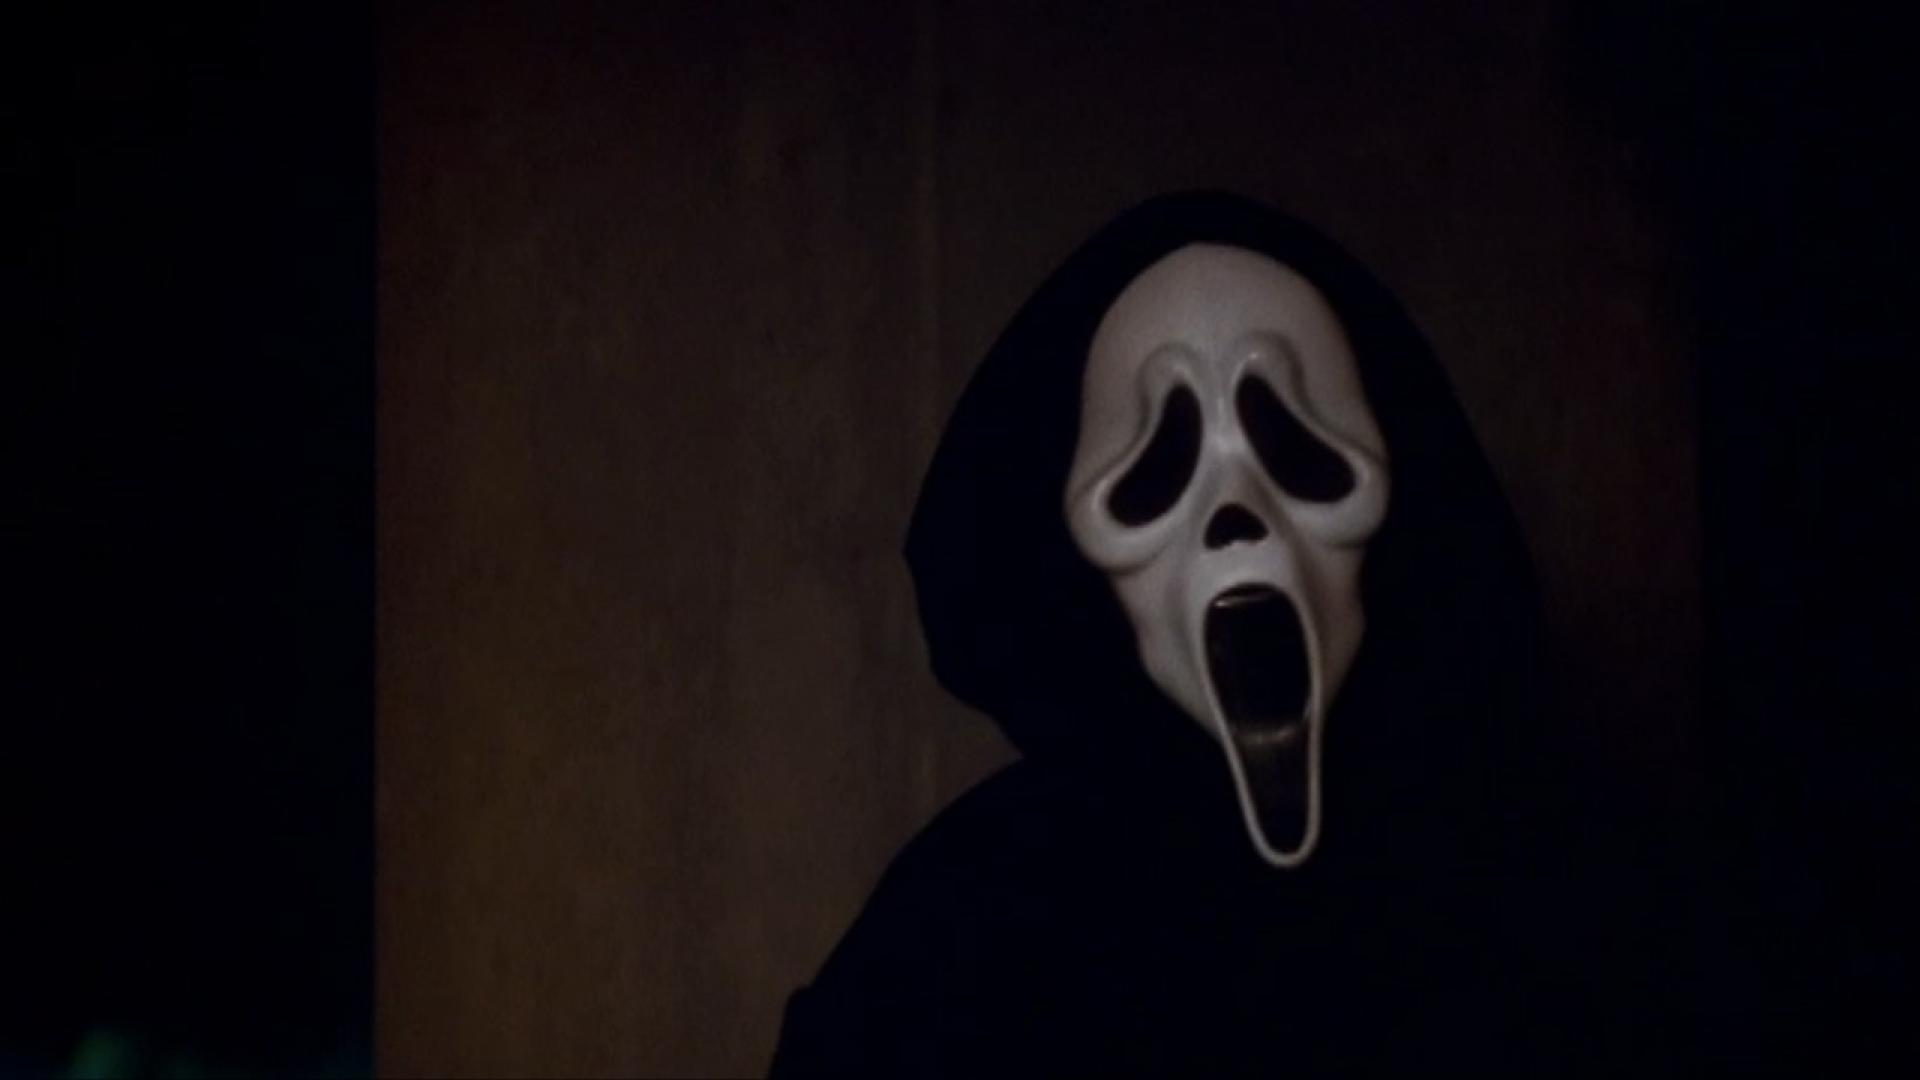 Scream 1-4 - Sikoly 1-4 (1996/1997/2000/2011)